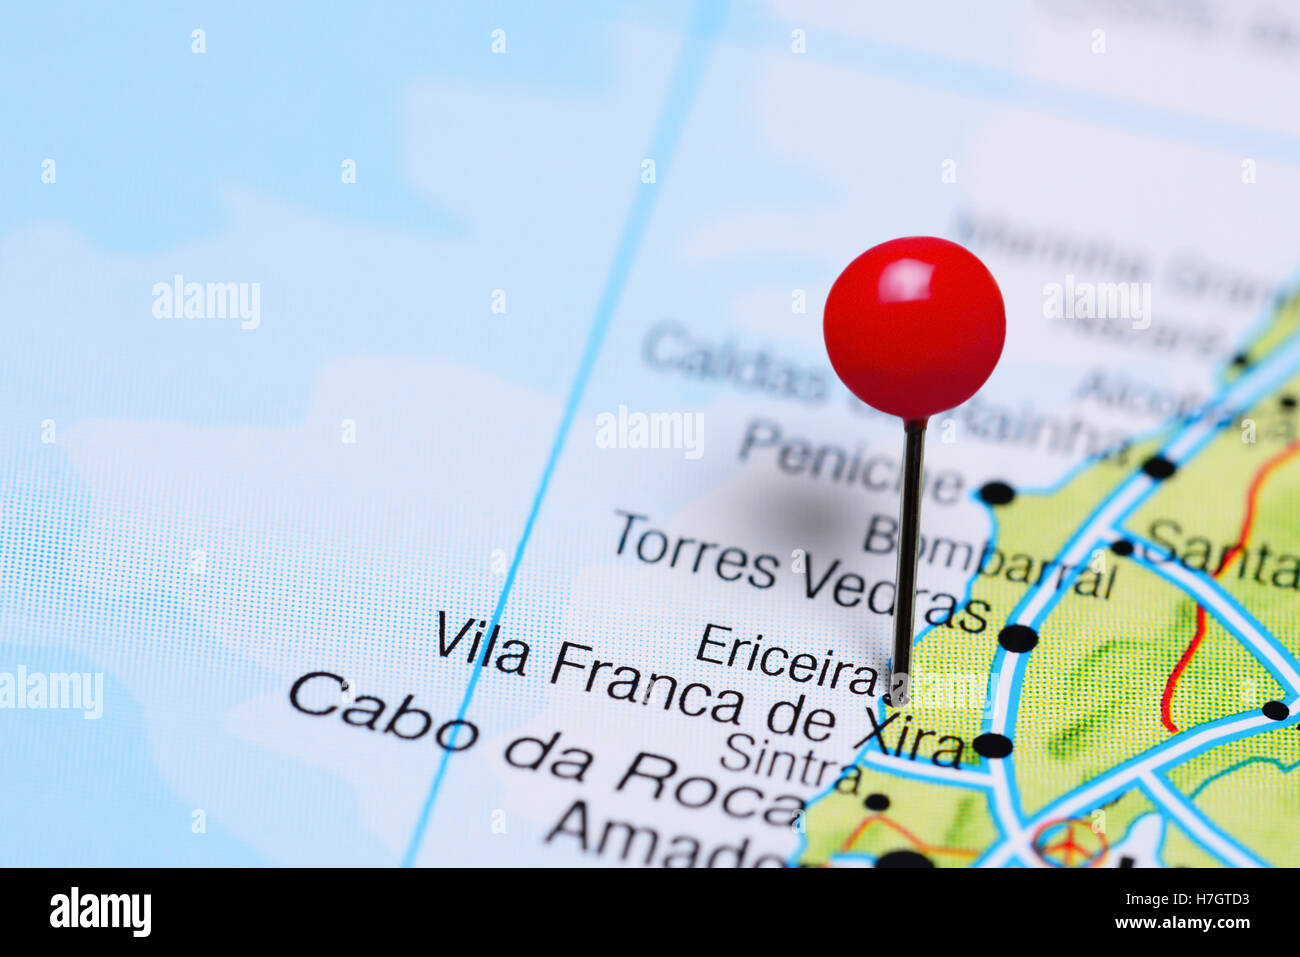 Ericeira Pinned On A Map Of Portugal Stock Photo Royalty Free - Portugal map ericeira